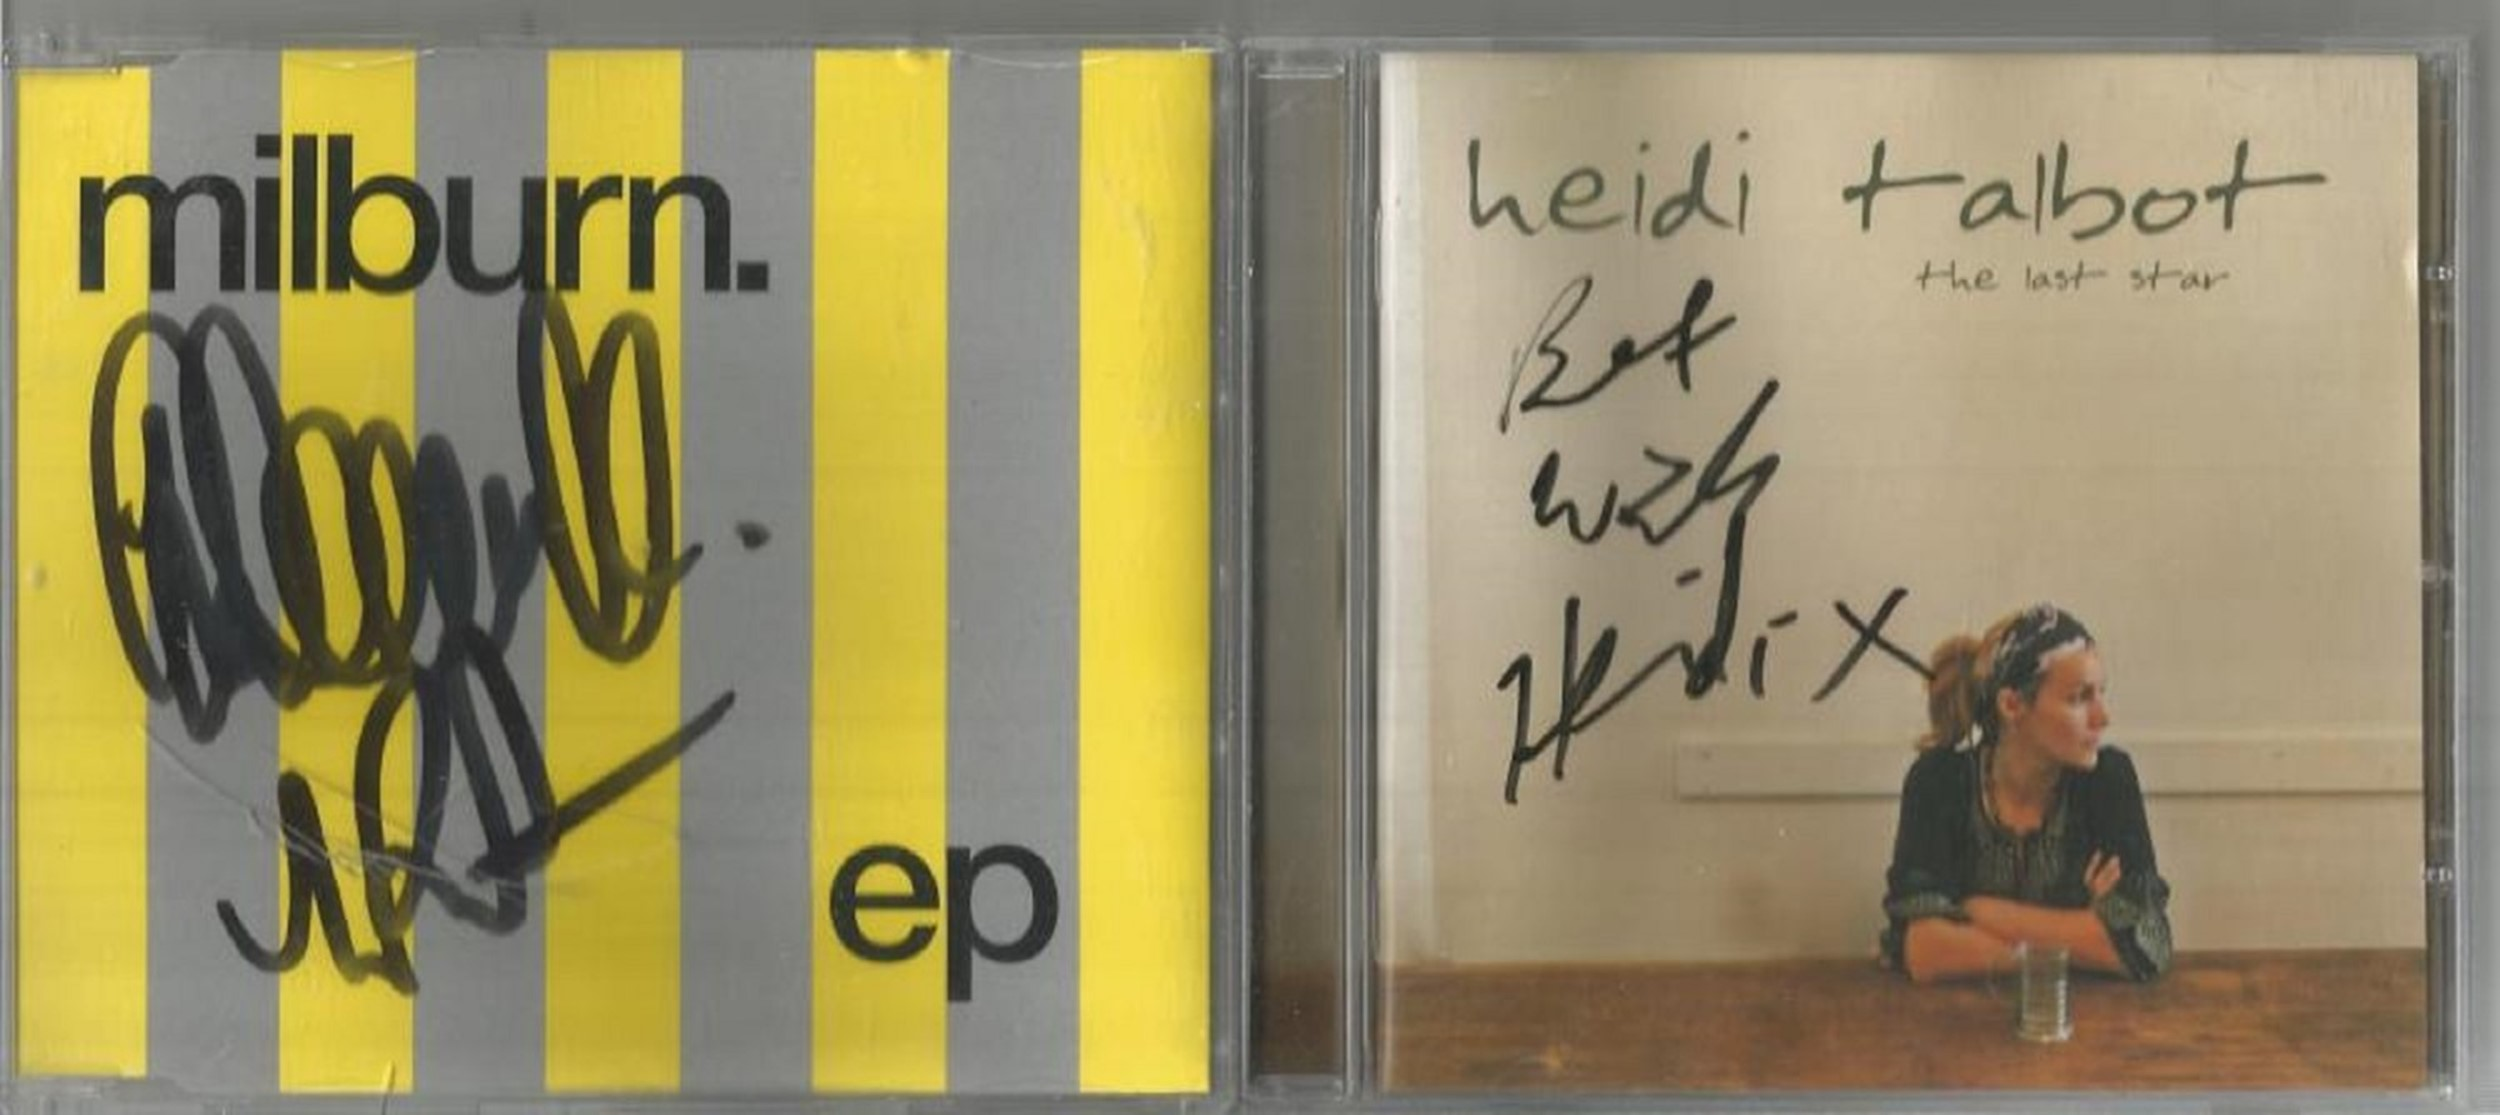 6 Signed CDs Including The East Coast Boys Big Girls Don't Cry Disc Included, Heidi Talbot The